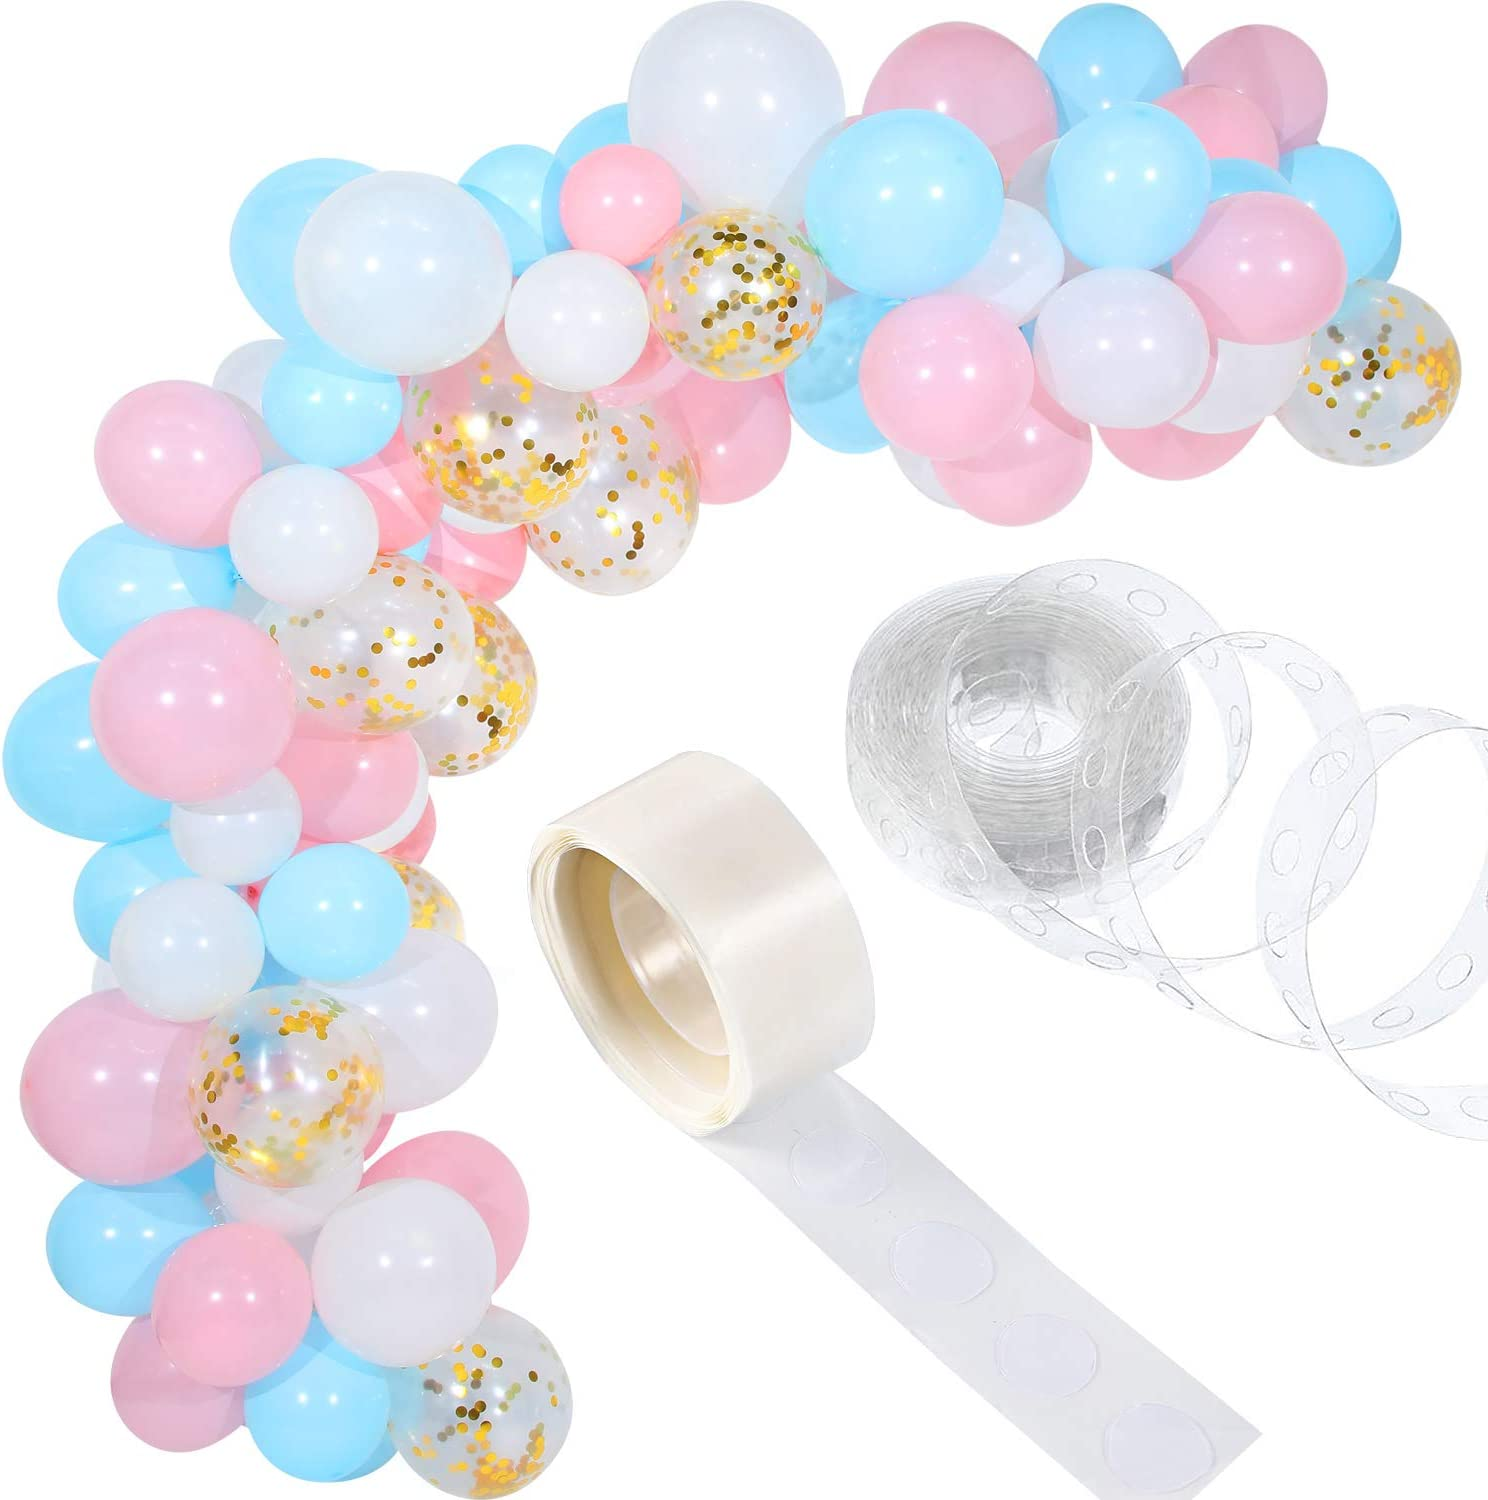 Tatuo 112 Pieces Baby Blue Pink Balloon Arch Kit Gender Reveal Balloon Garland for Baby Shower Wedding Birthday Party Decorations